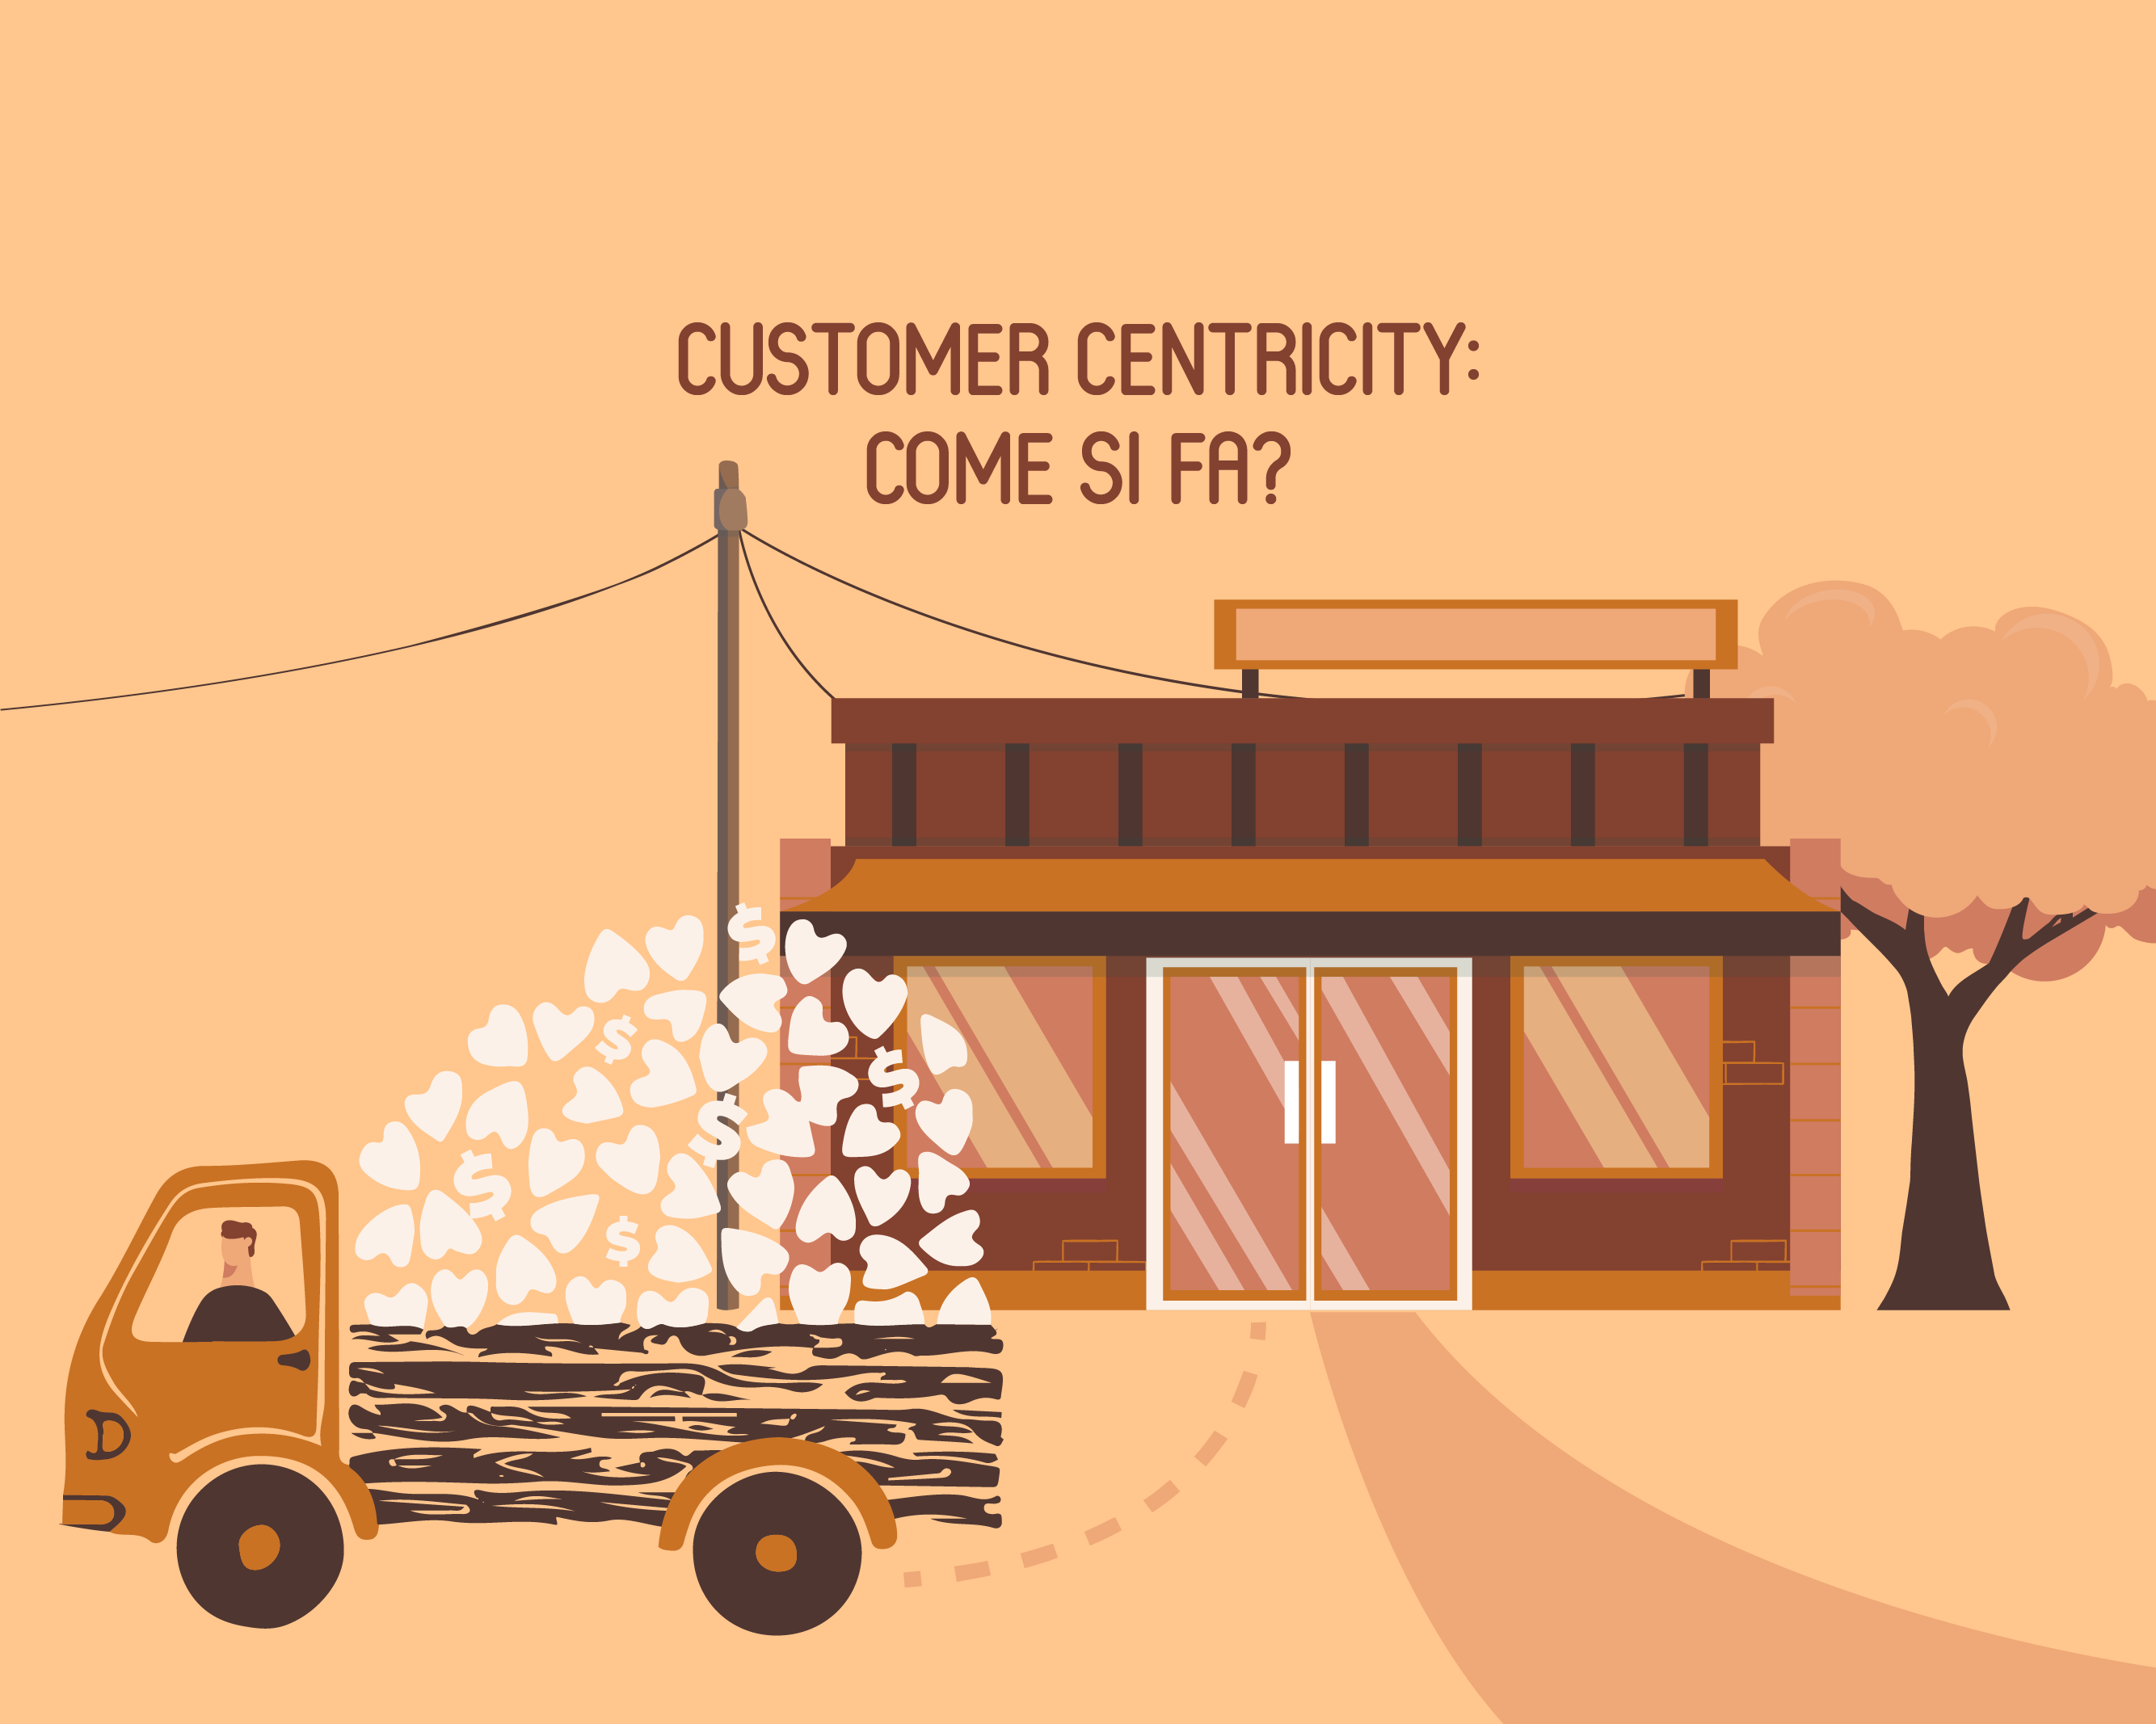 Customer centricity: come si fa?